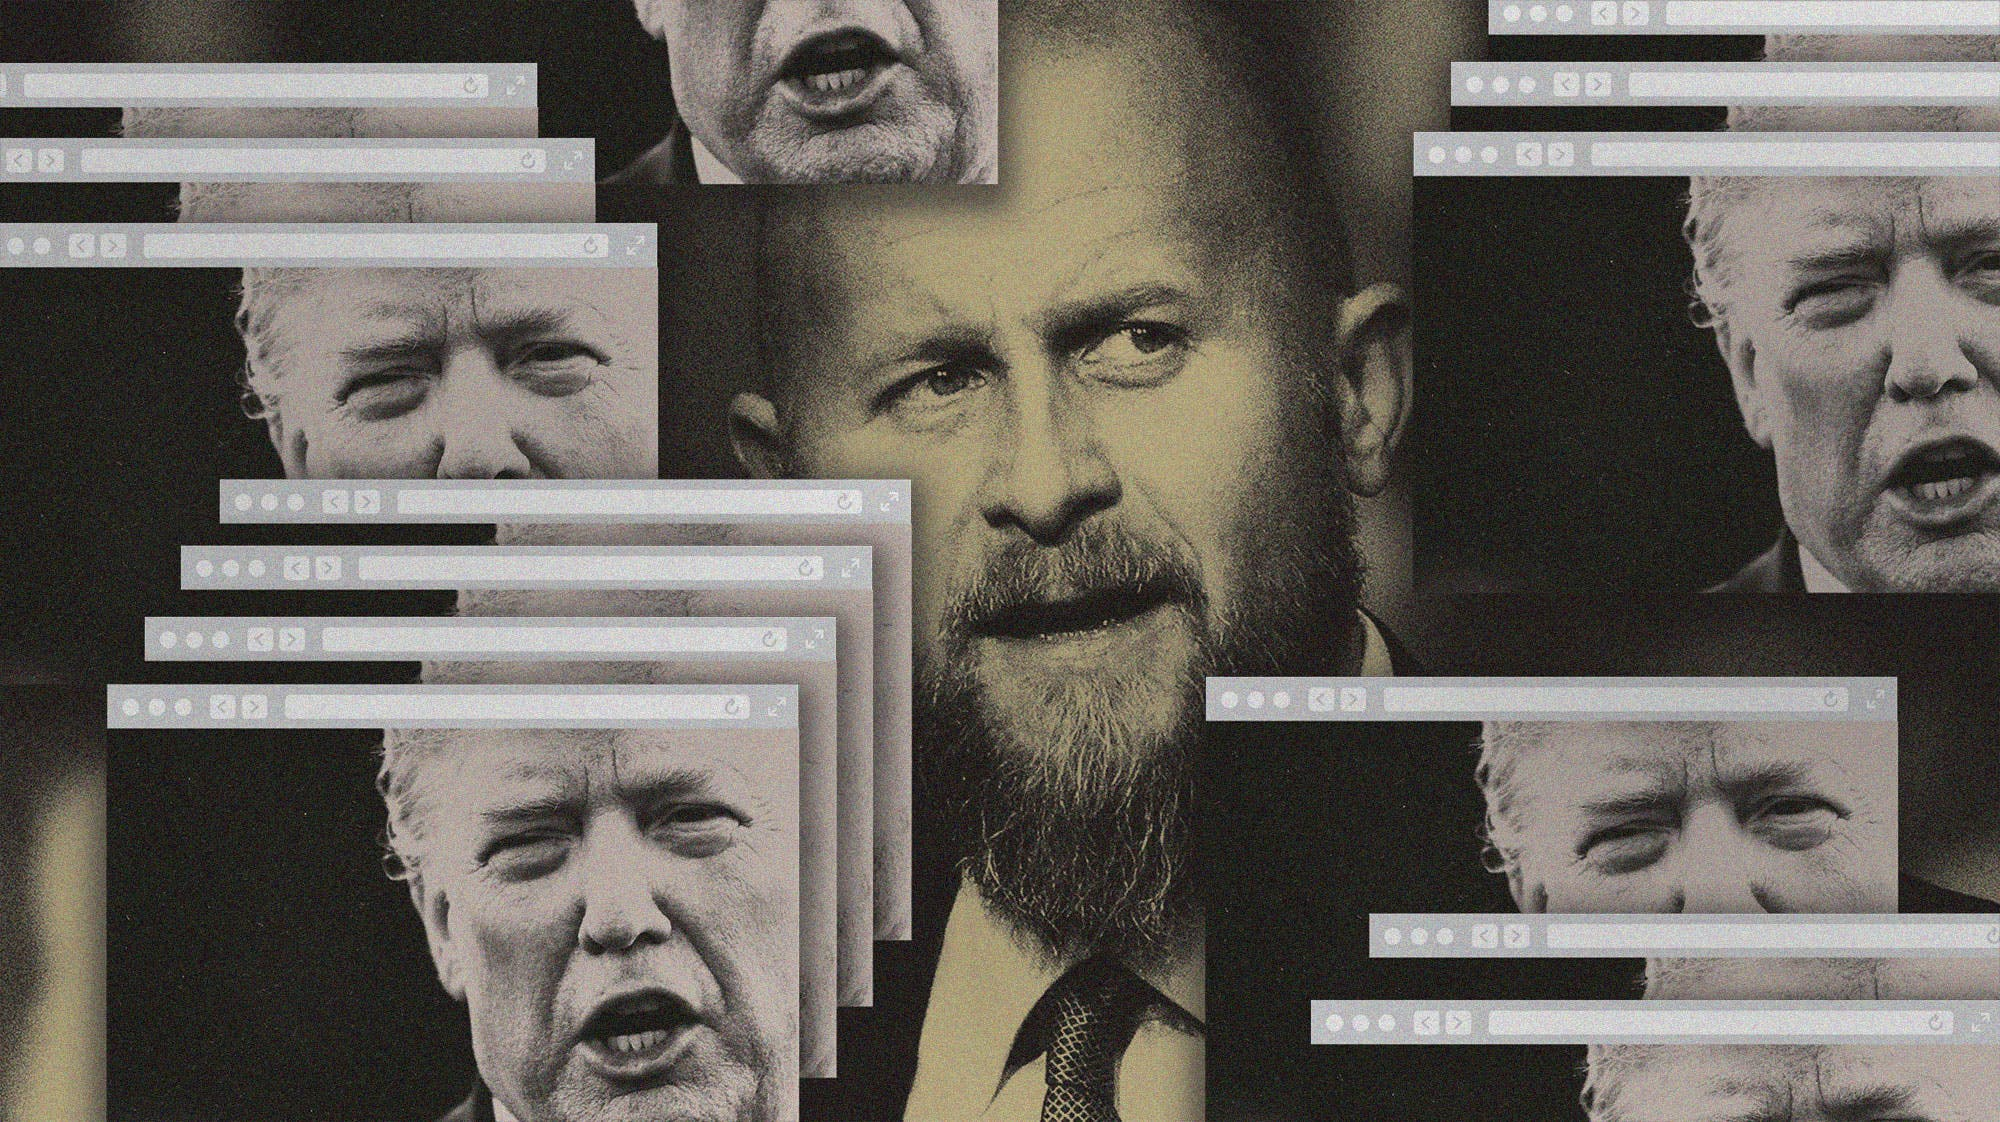 Brad Parscale and Donald Trump